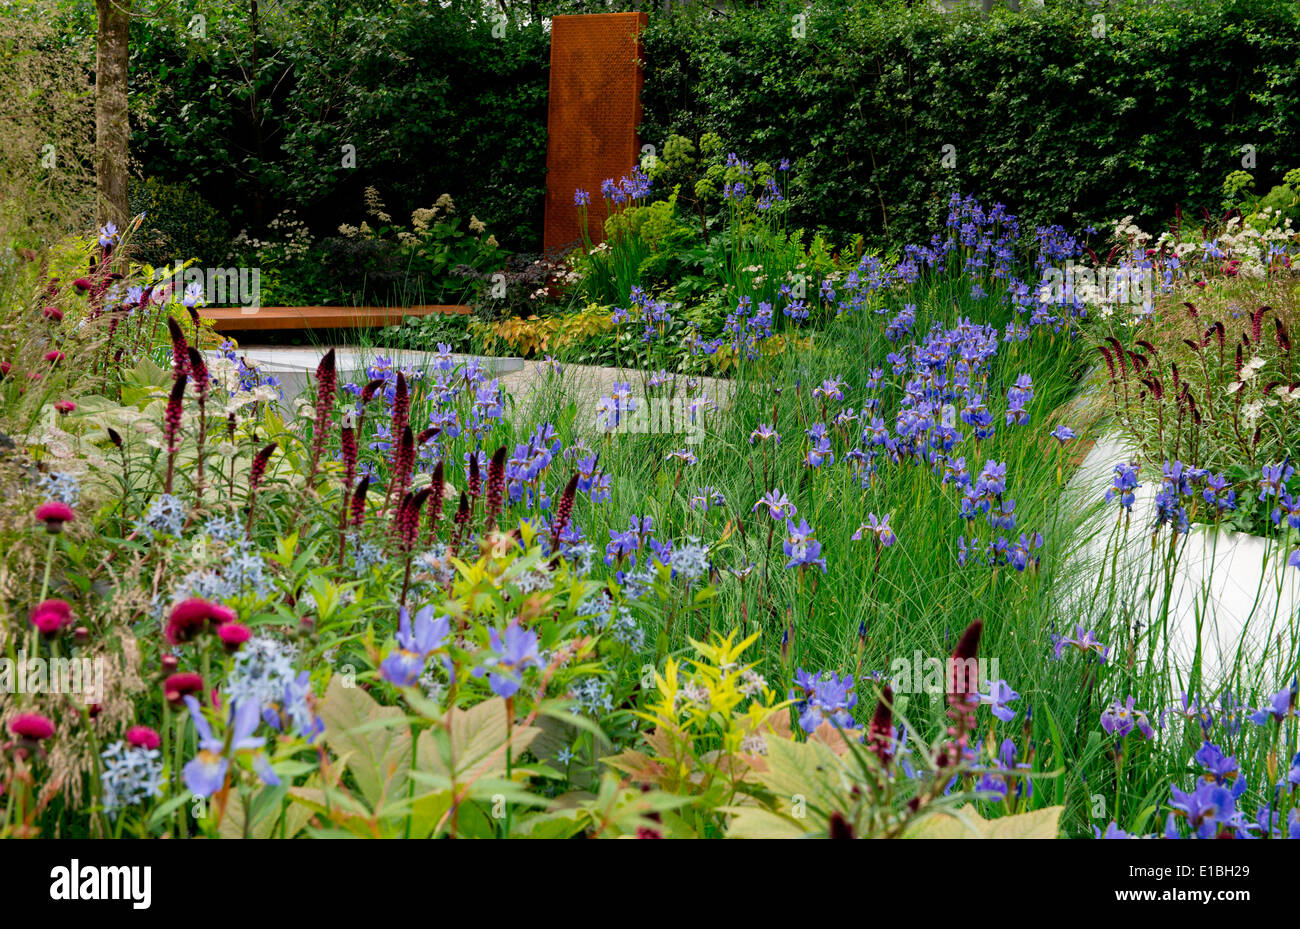 The RBC Waterscape Garden at the RHS Chelsea Flower Show 2014, London, UK - Stock Image